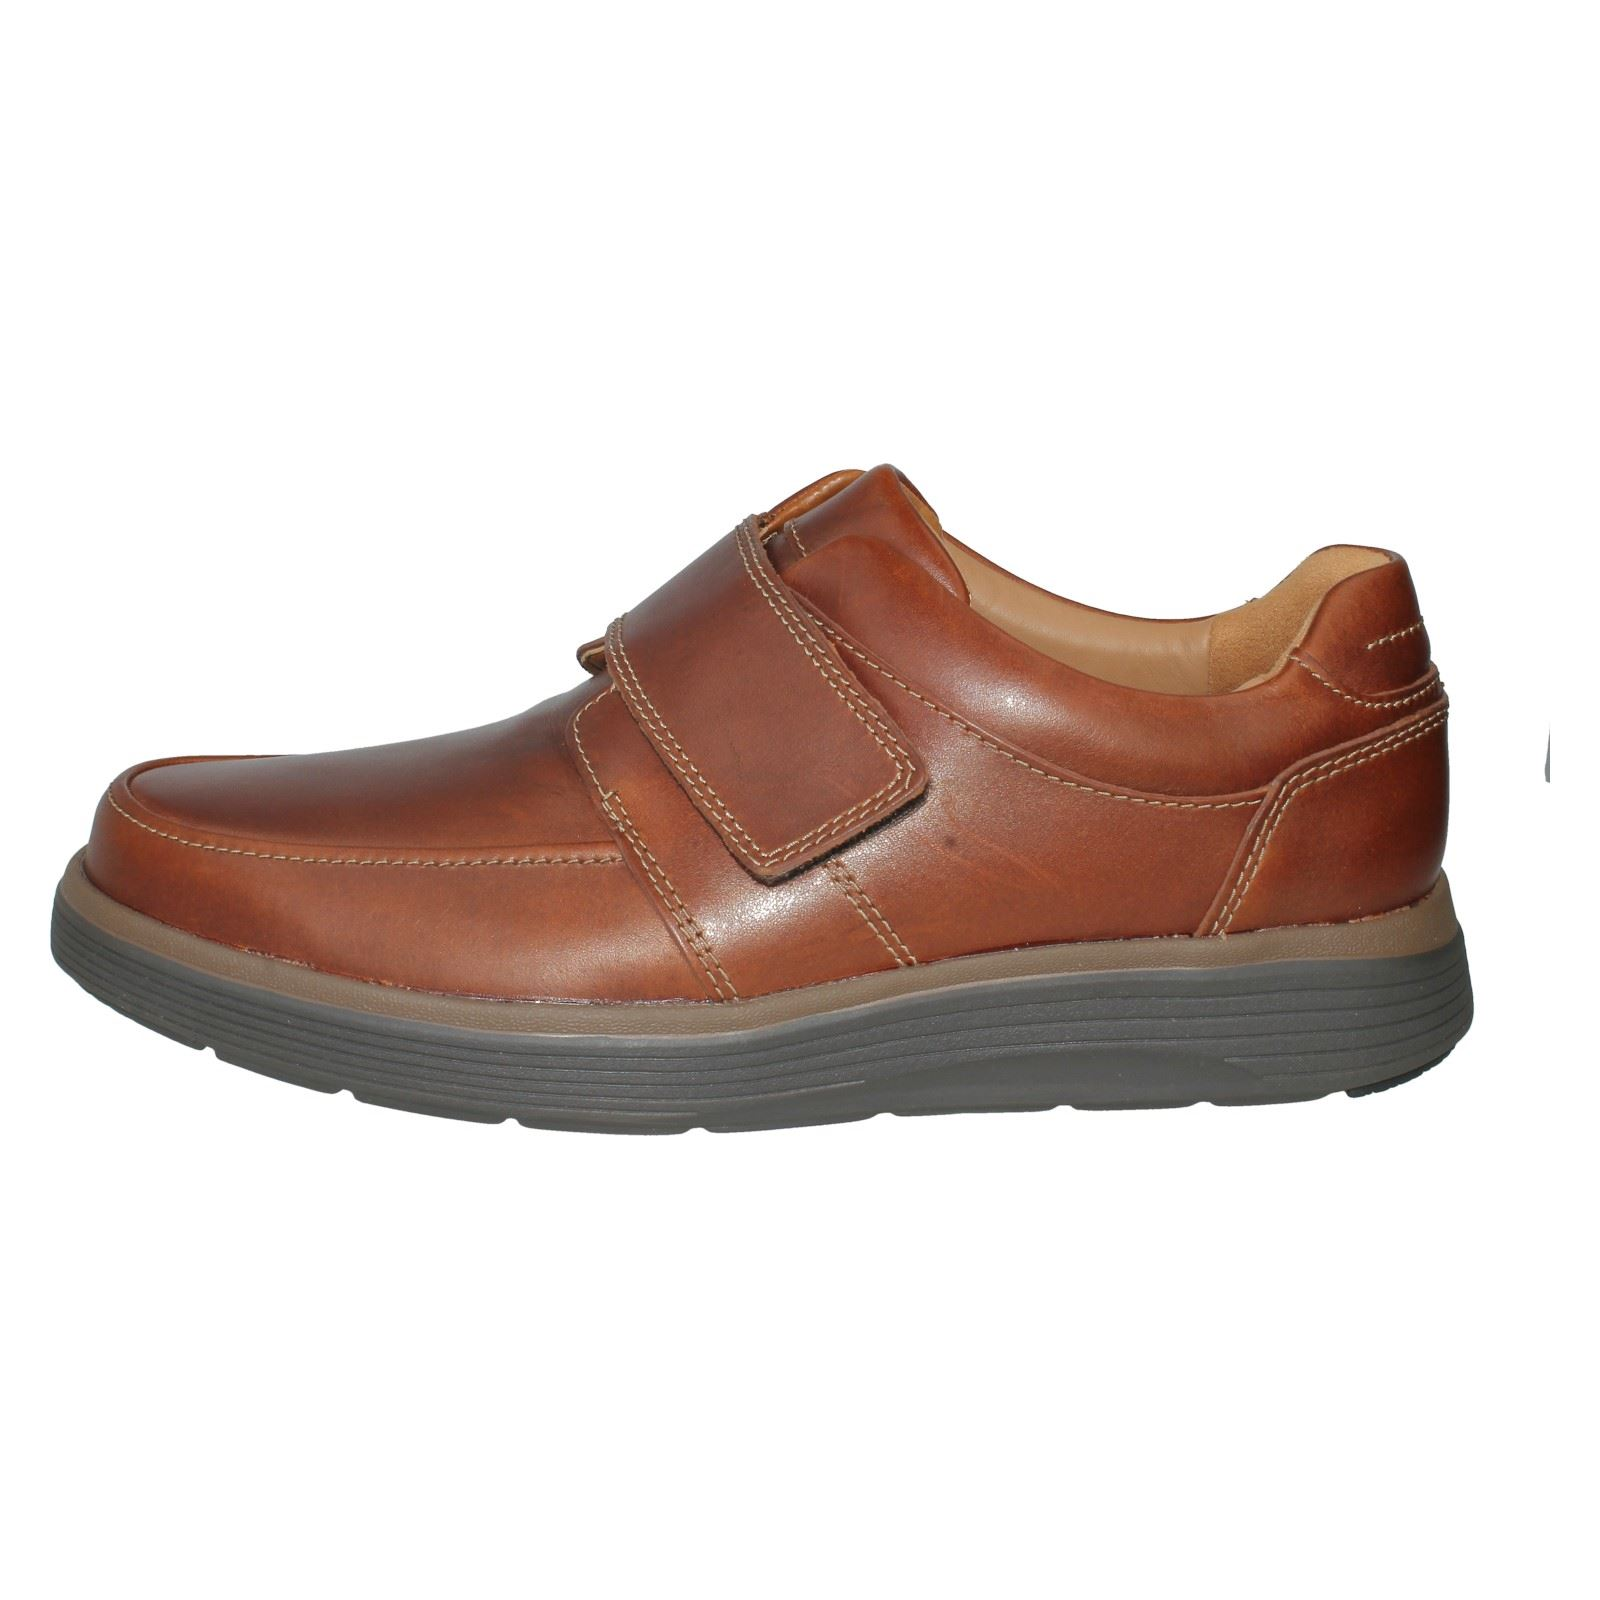 Mens Unstructured by Clarks Leather Casual Shoes Style Style Style - Un Abode Strap 9900a5